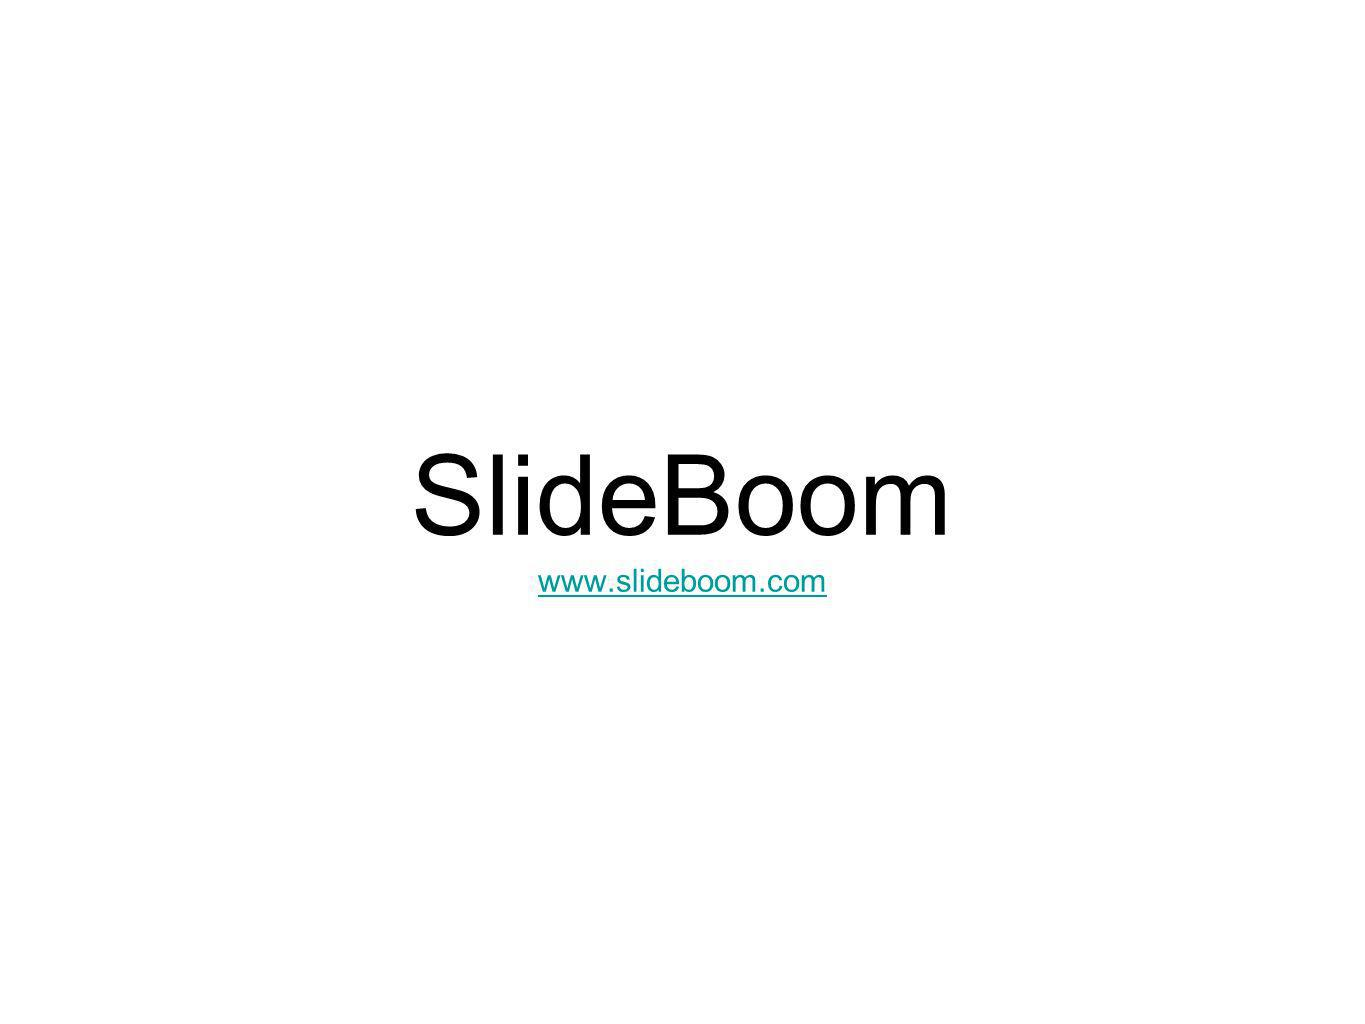 SlideBoom www.slideboom.com www.slideboom.com